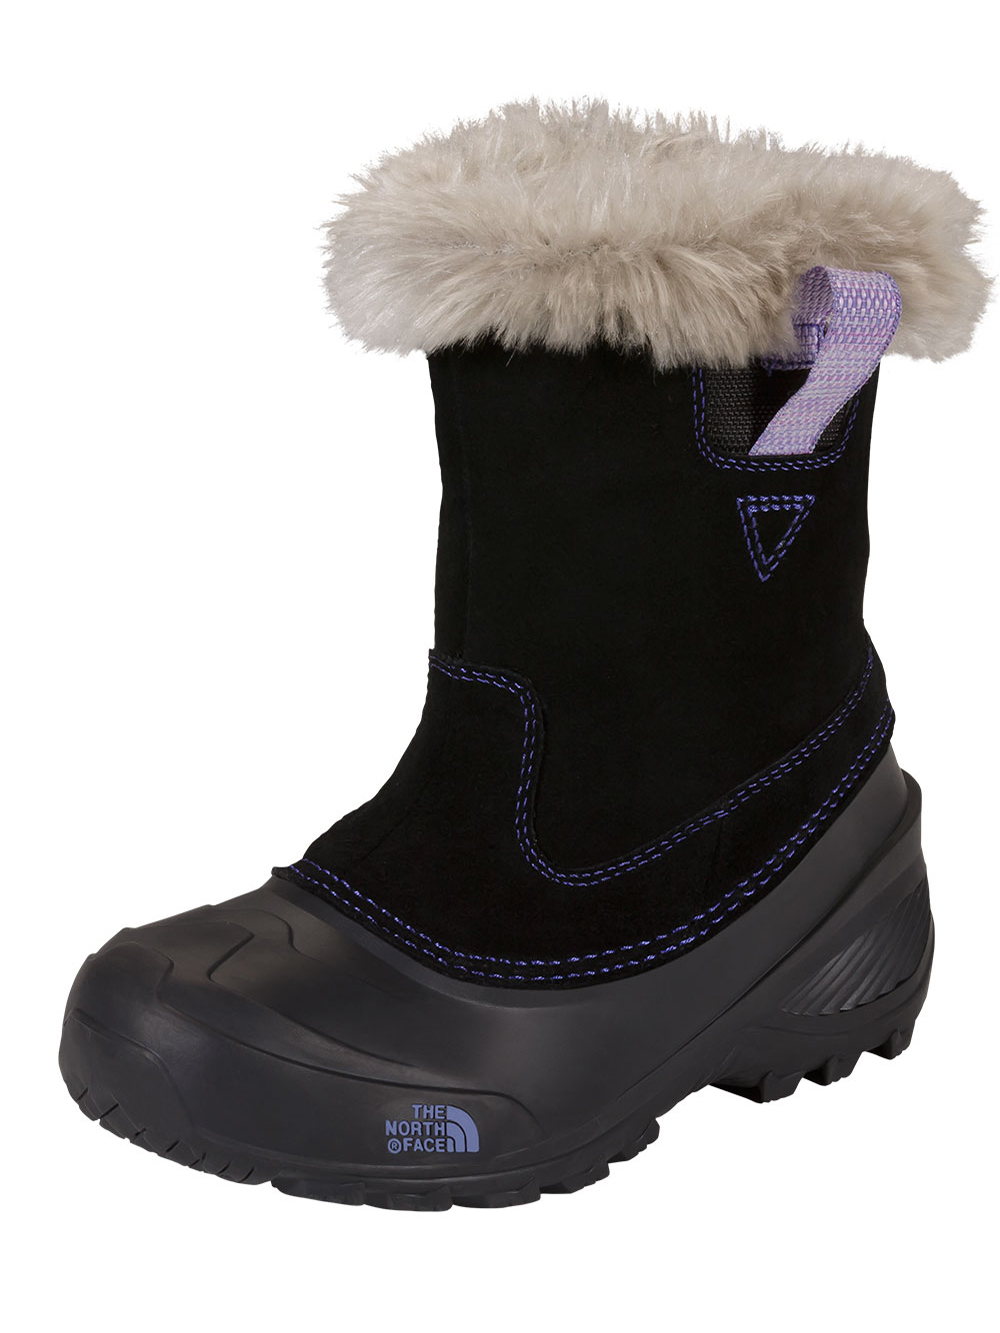 The North Face Girls' Shellista Pull-On II Boots (Youth Sizes 13 - 7)